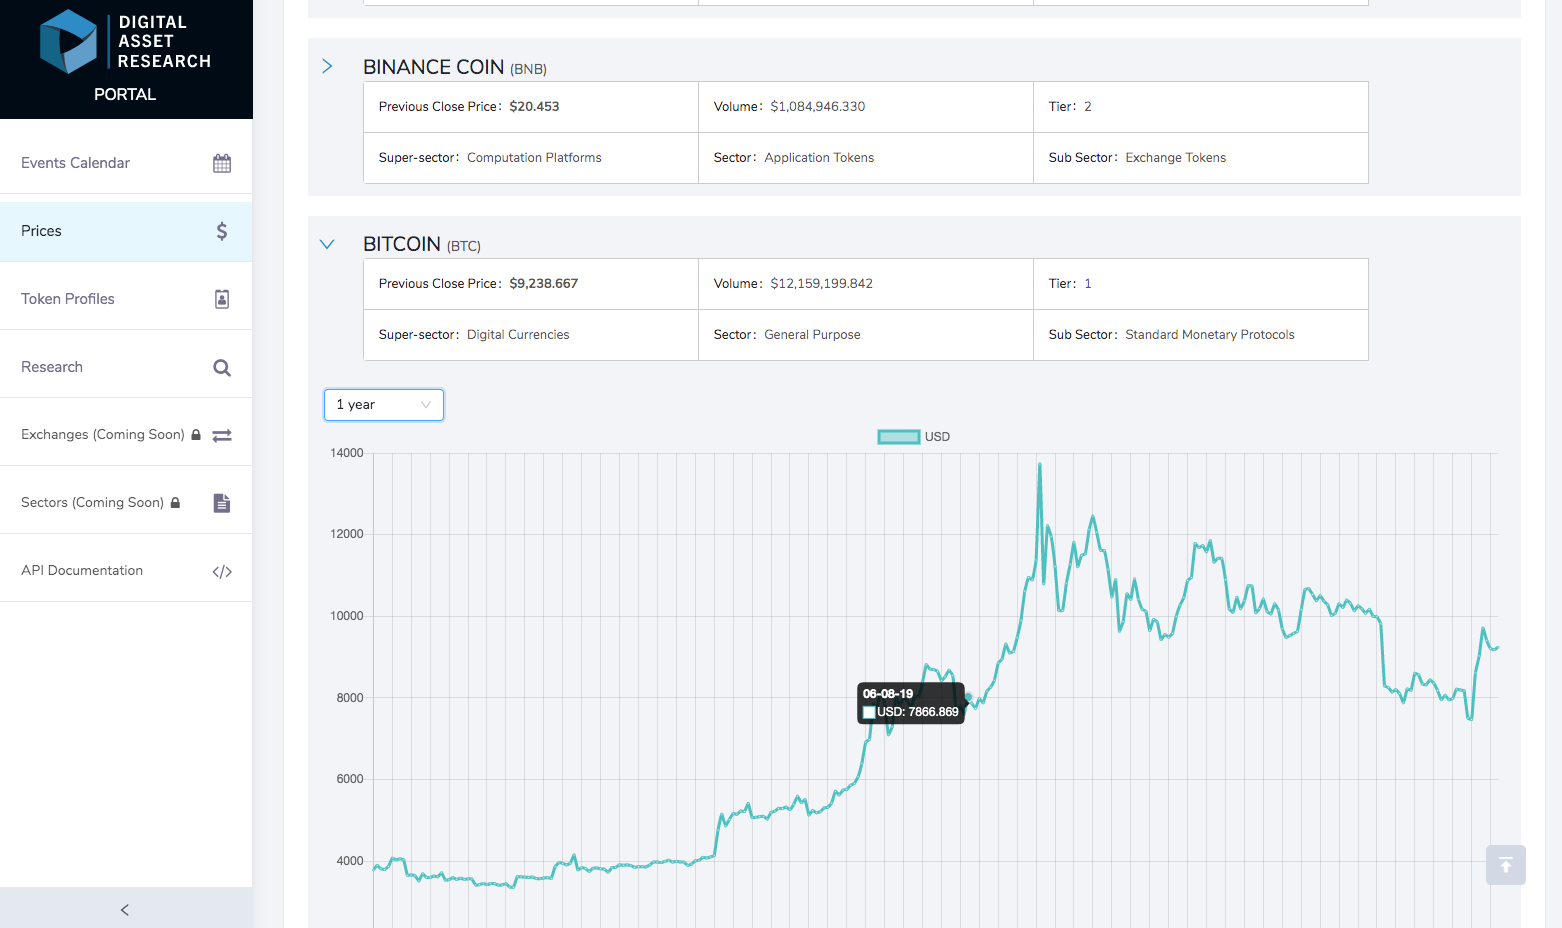 Asset View Prices